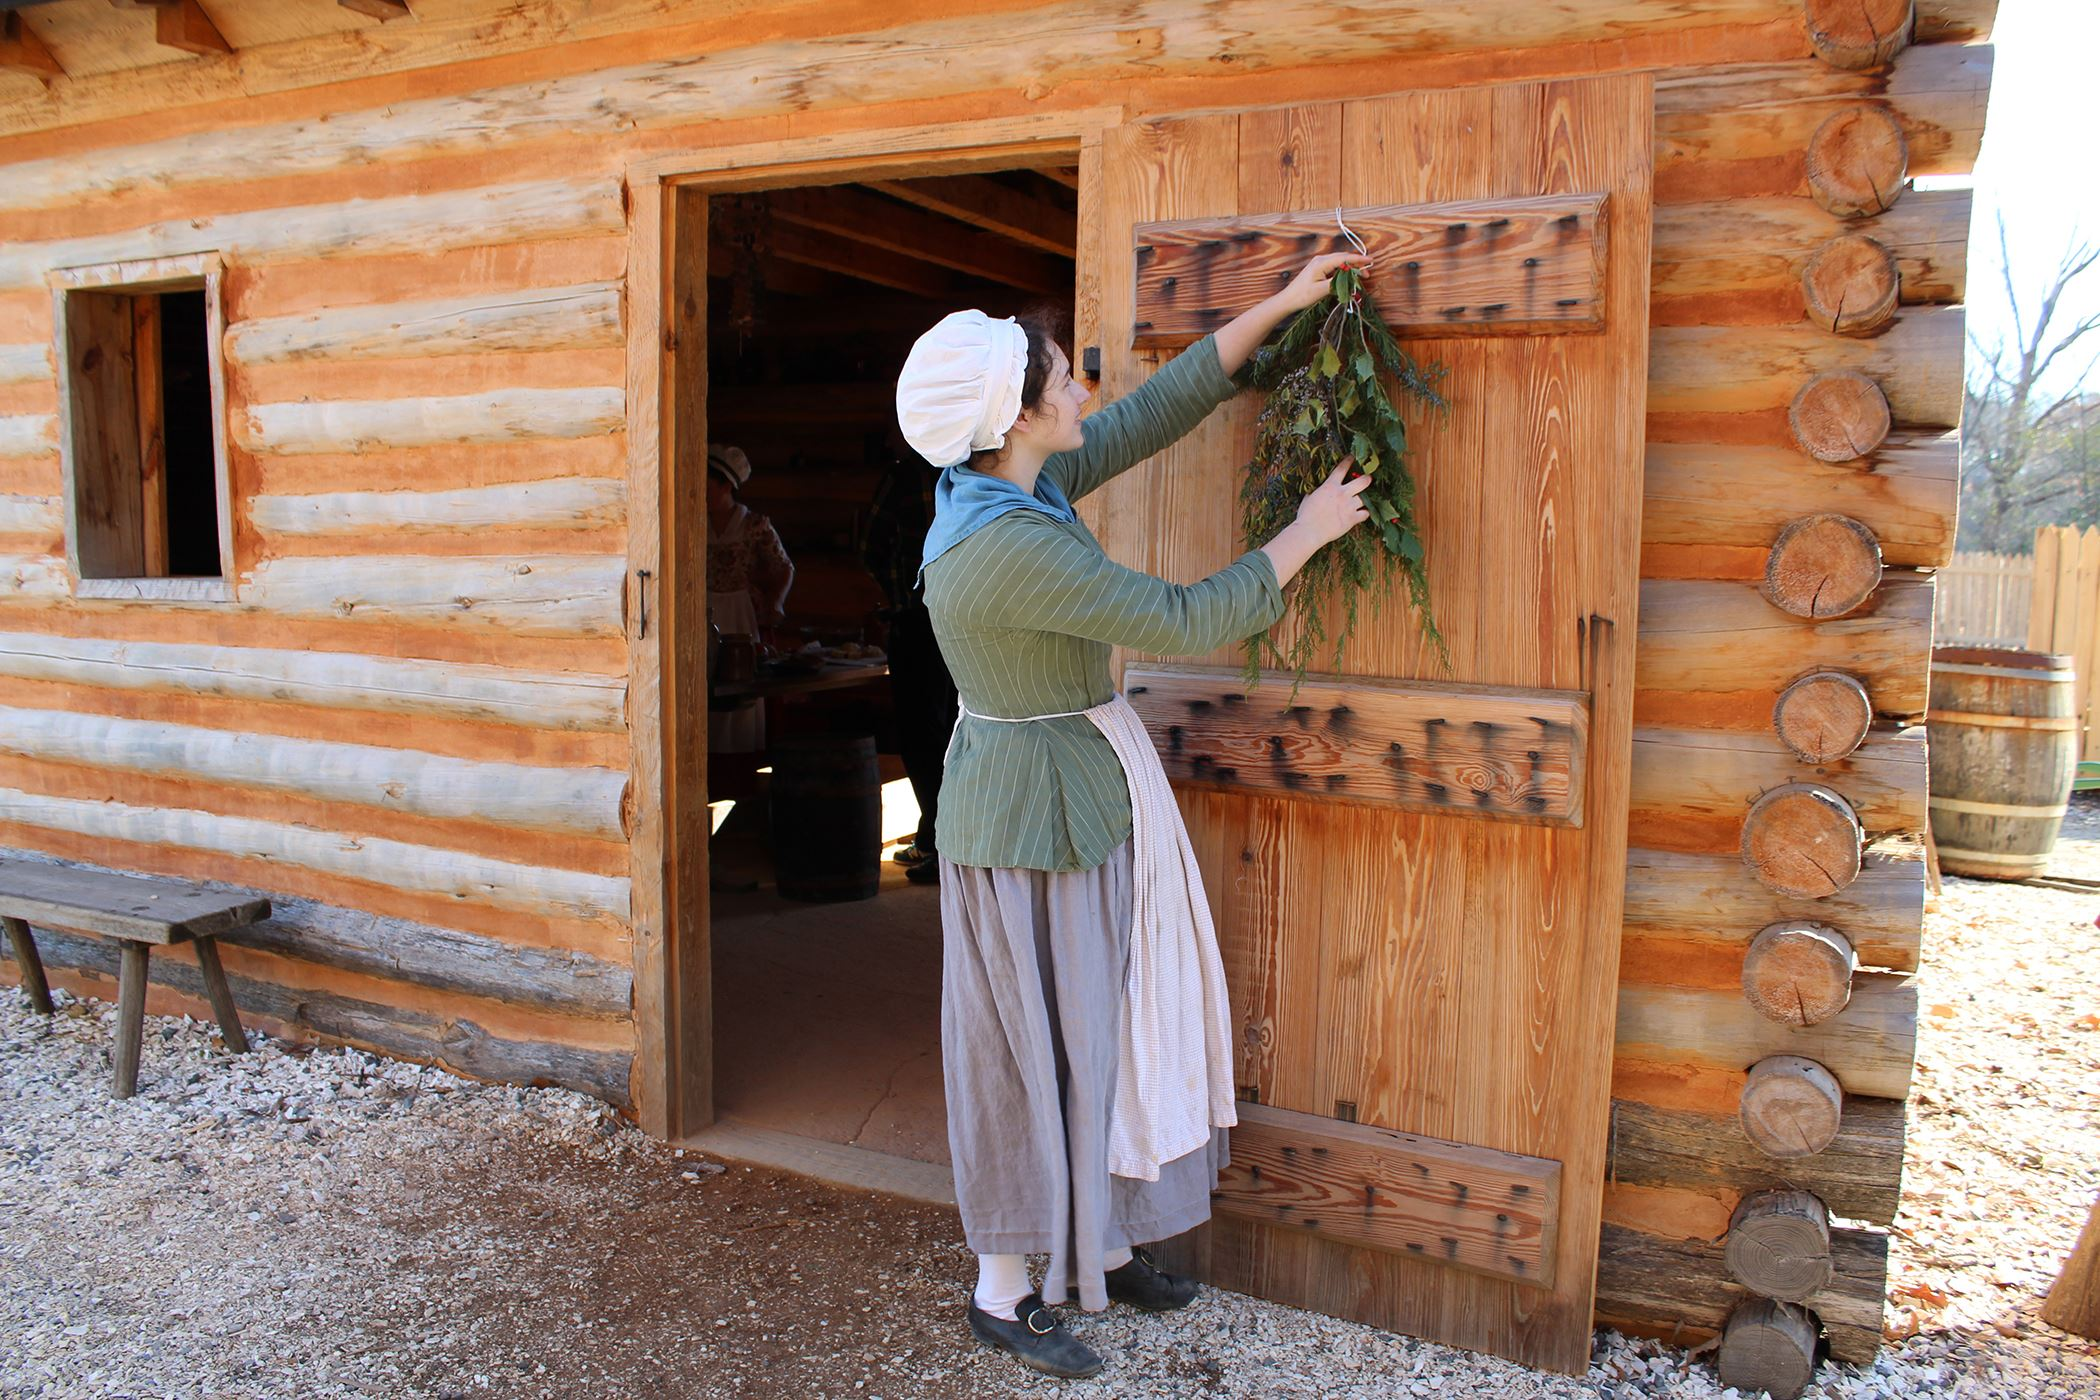 Colonial Interpreter Hanging Christmas Greenery at Outdoor Encampment at American Revolution Museum